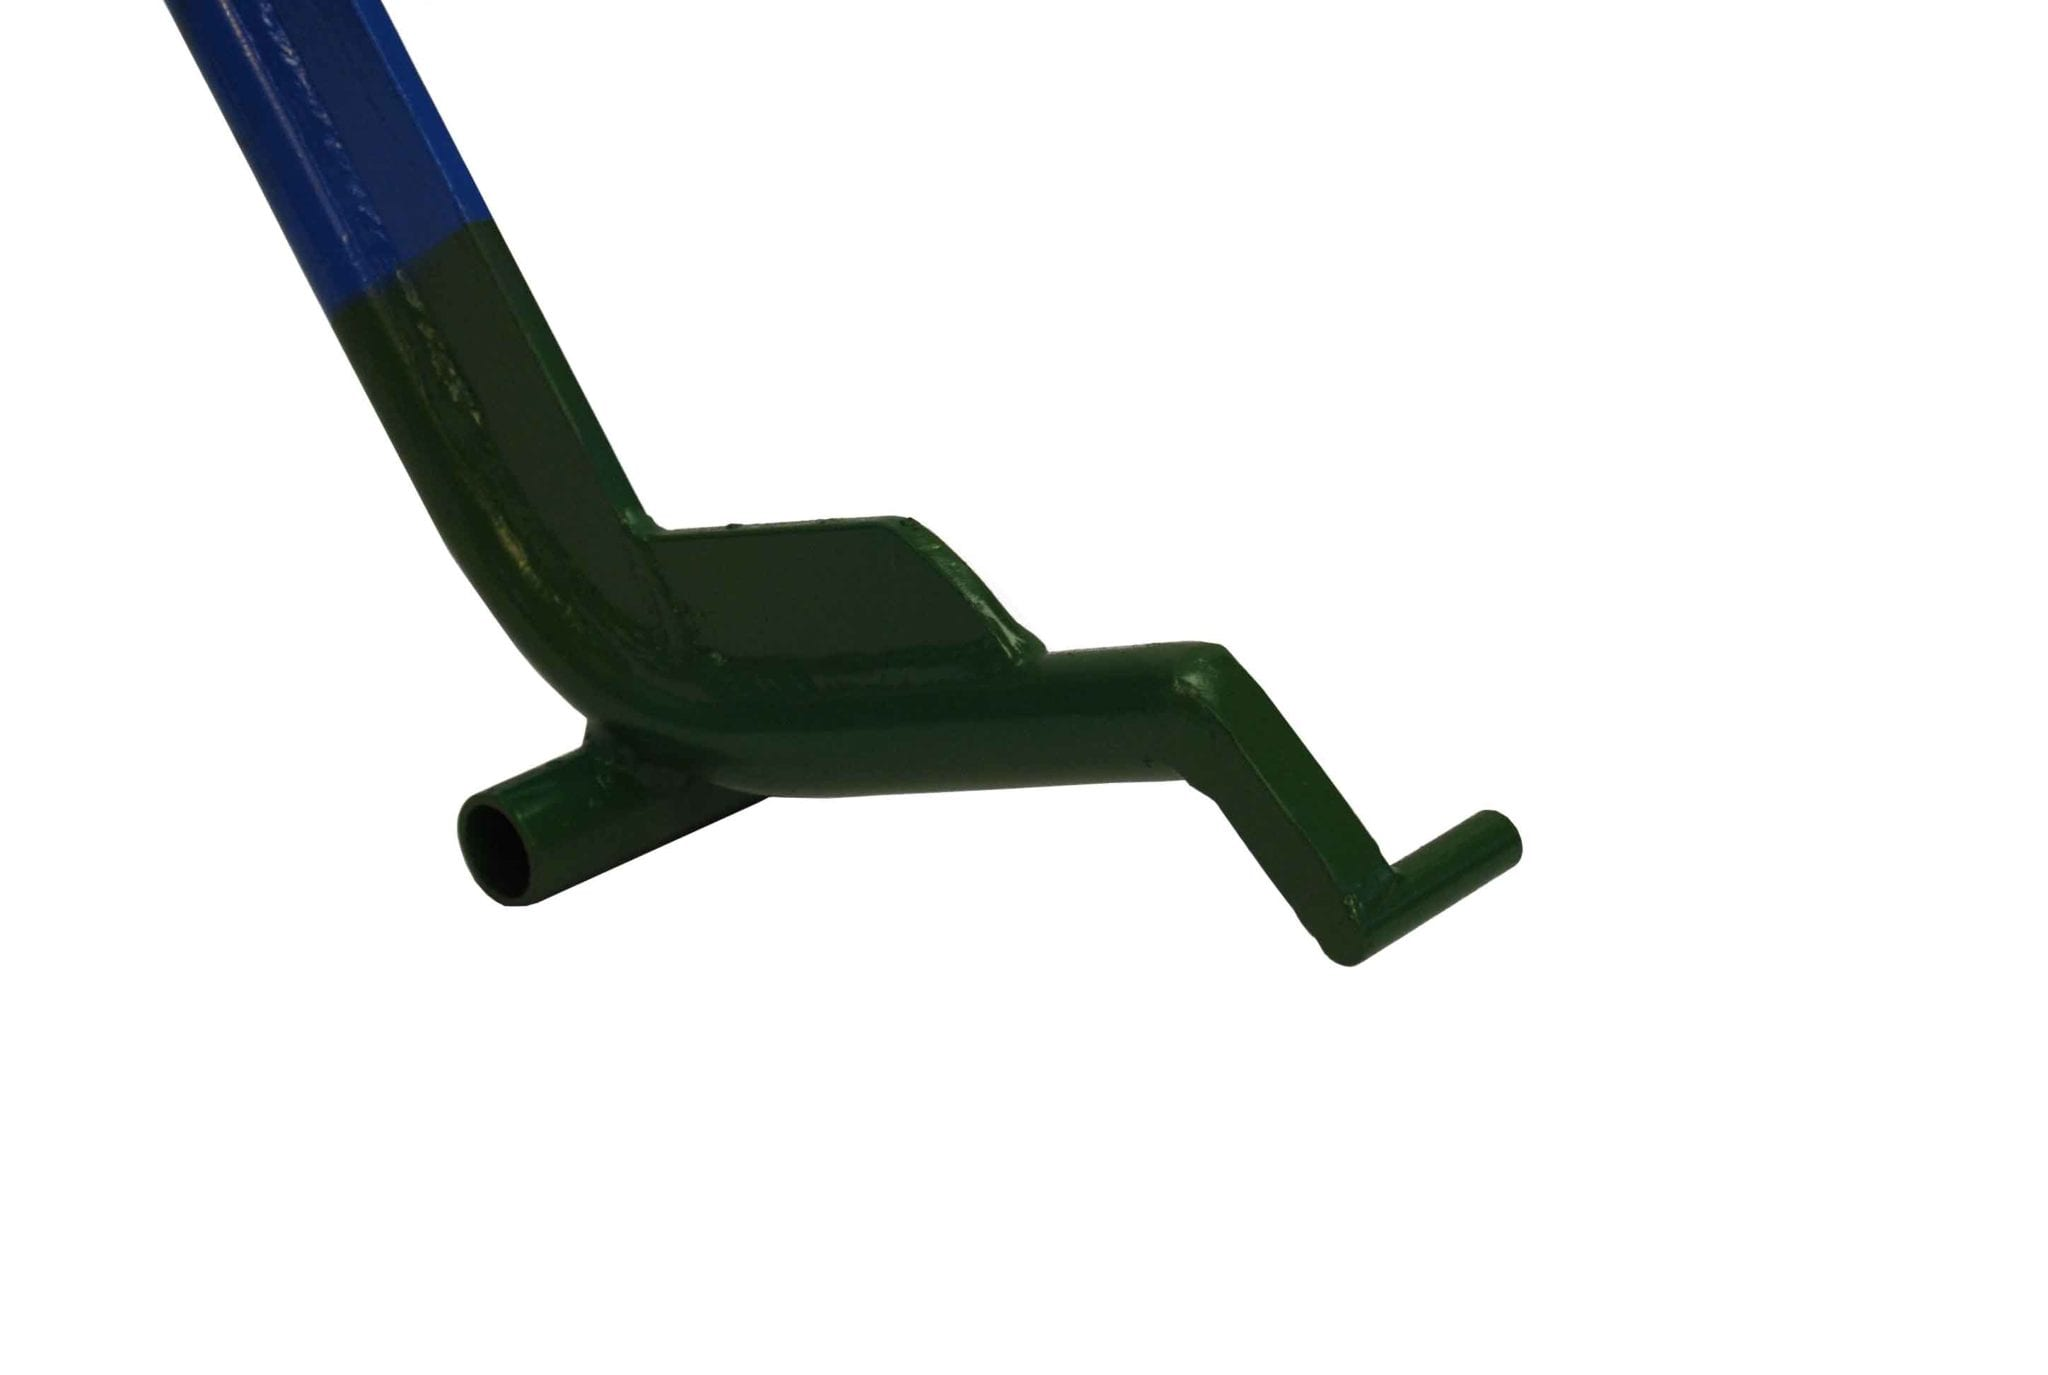 Blue Streak End Cap Handle